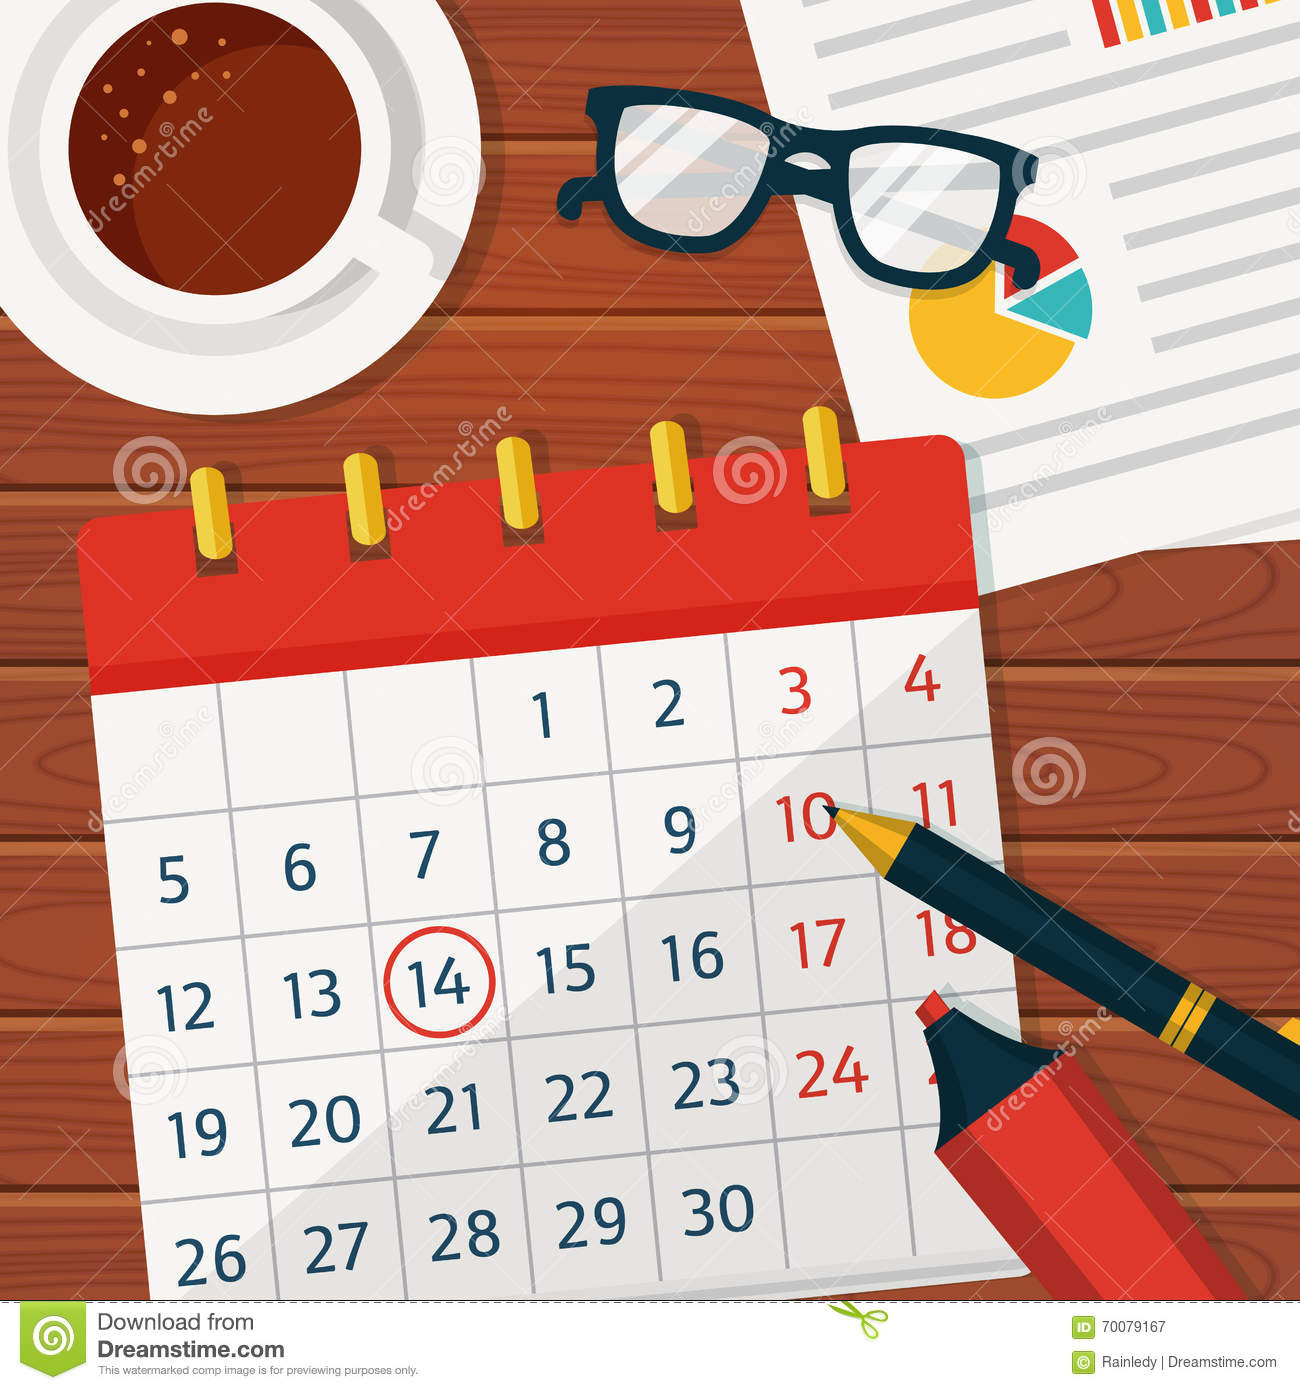 Calendar Planner Vector Free : Calendar planning vector concept background stock